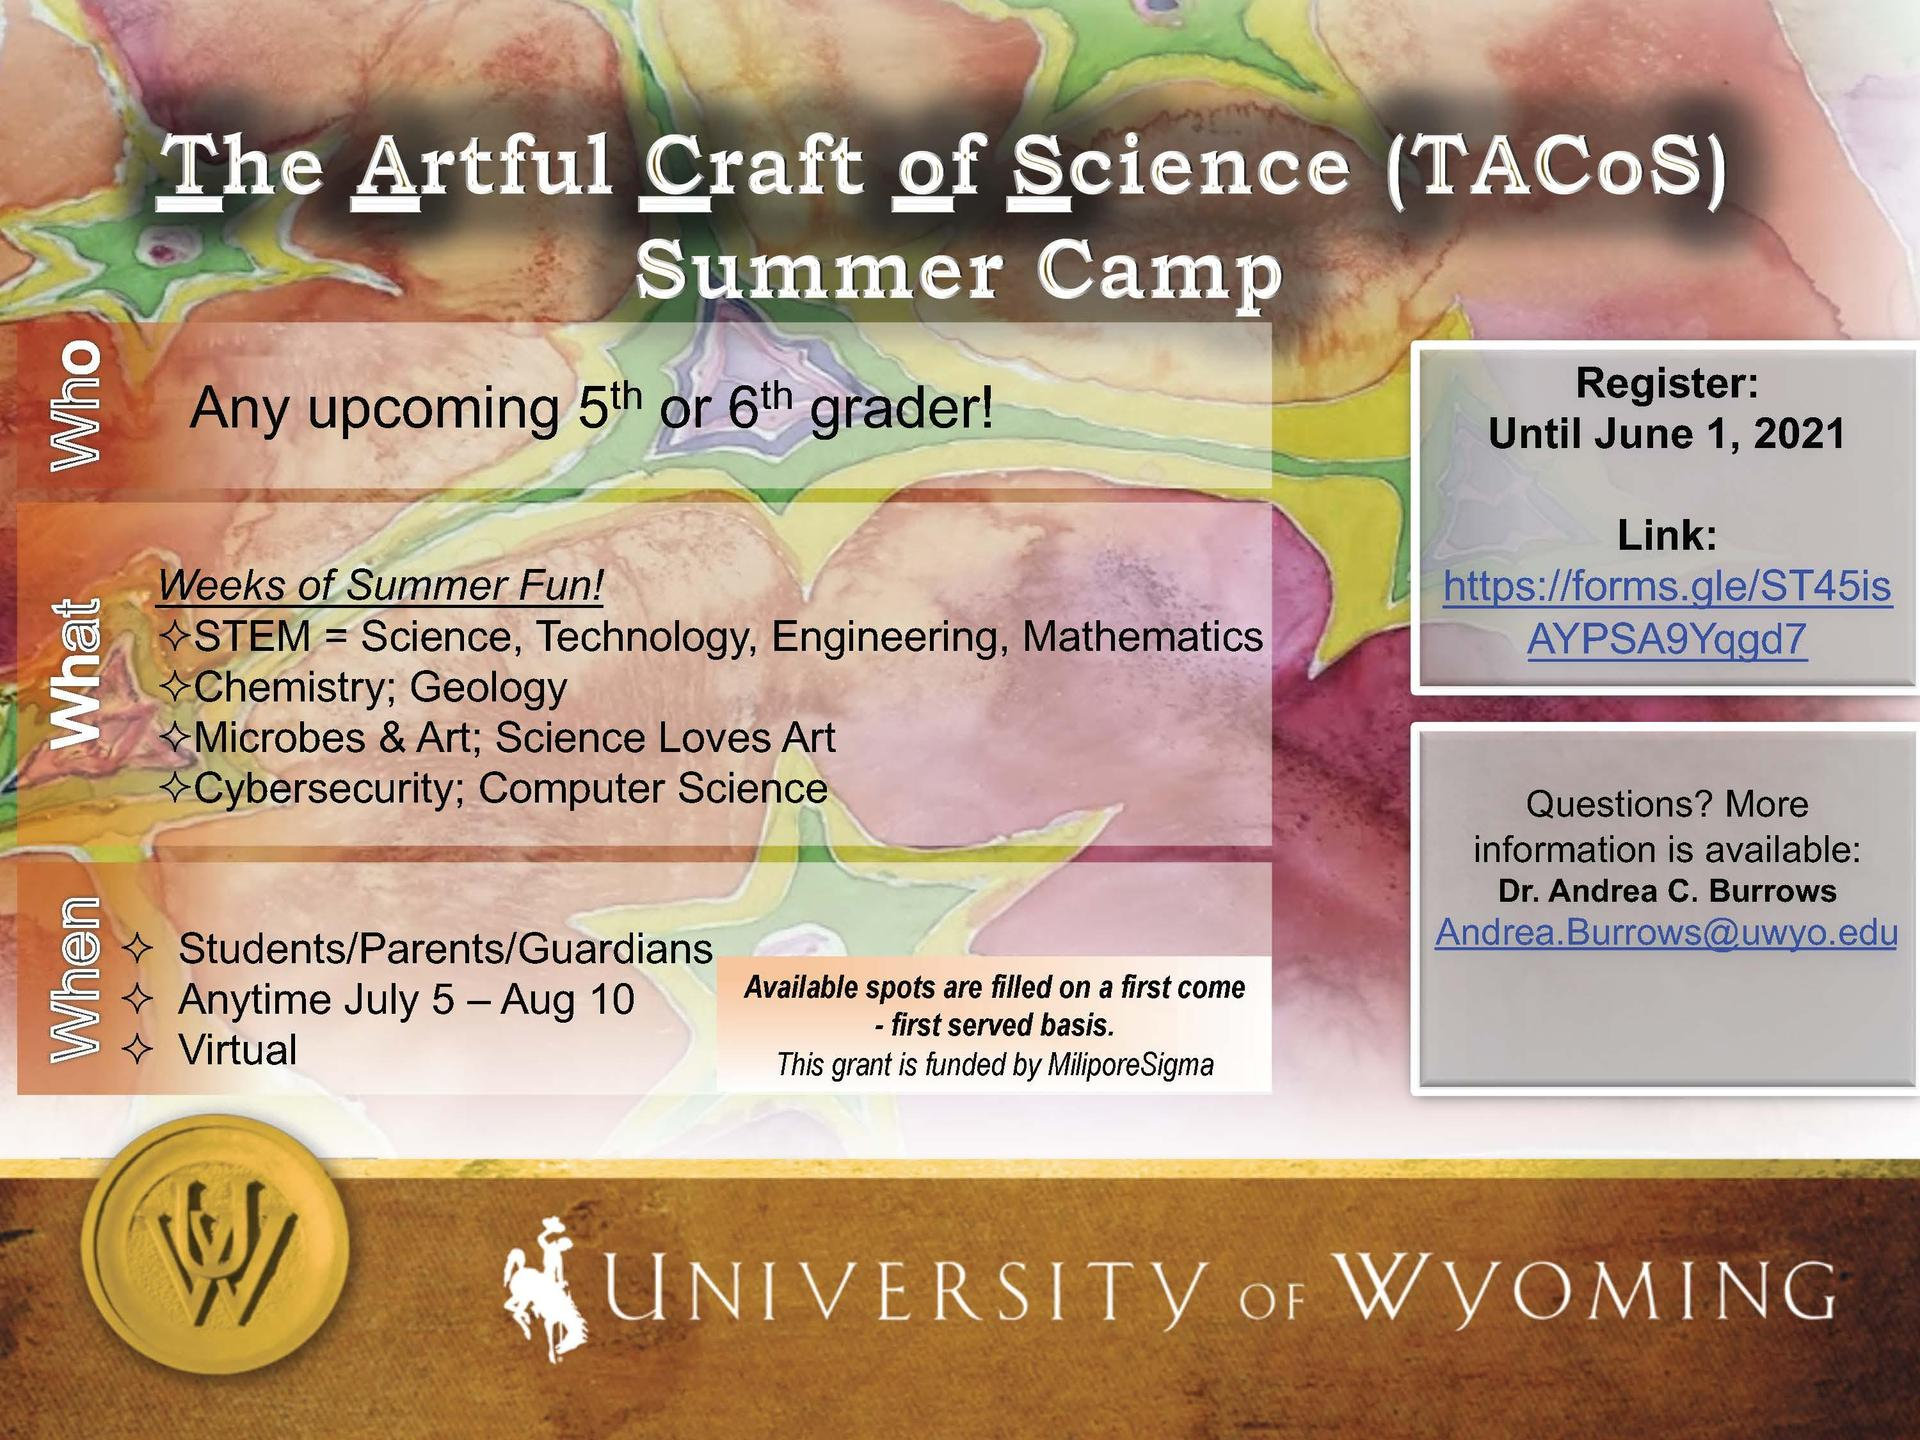 University of Wyoming TACoS Summer Camp Flyer